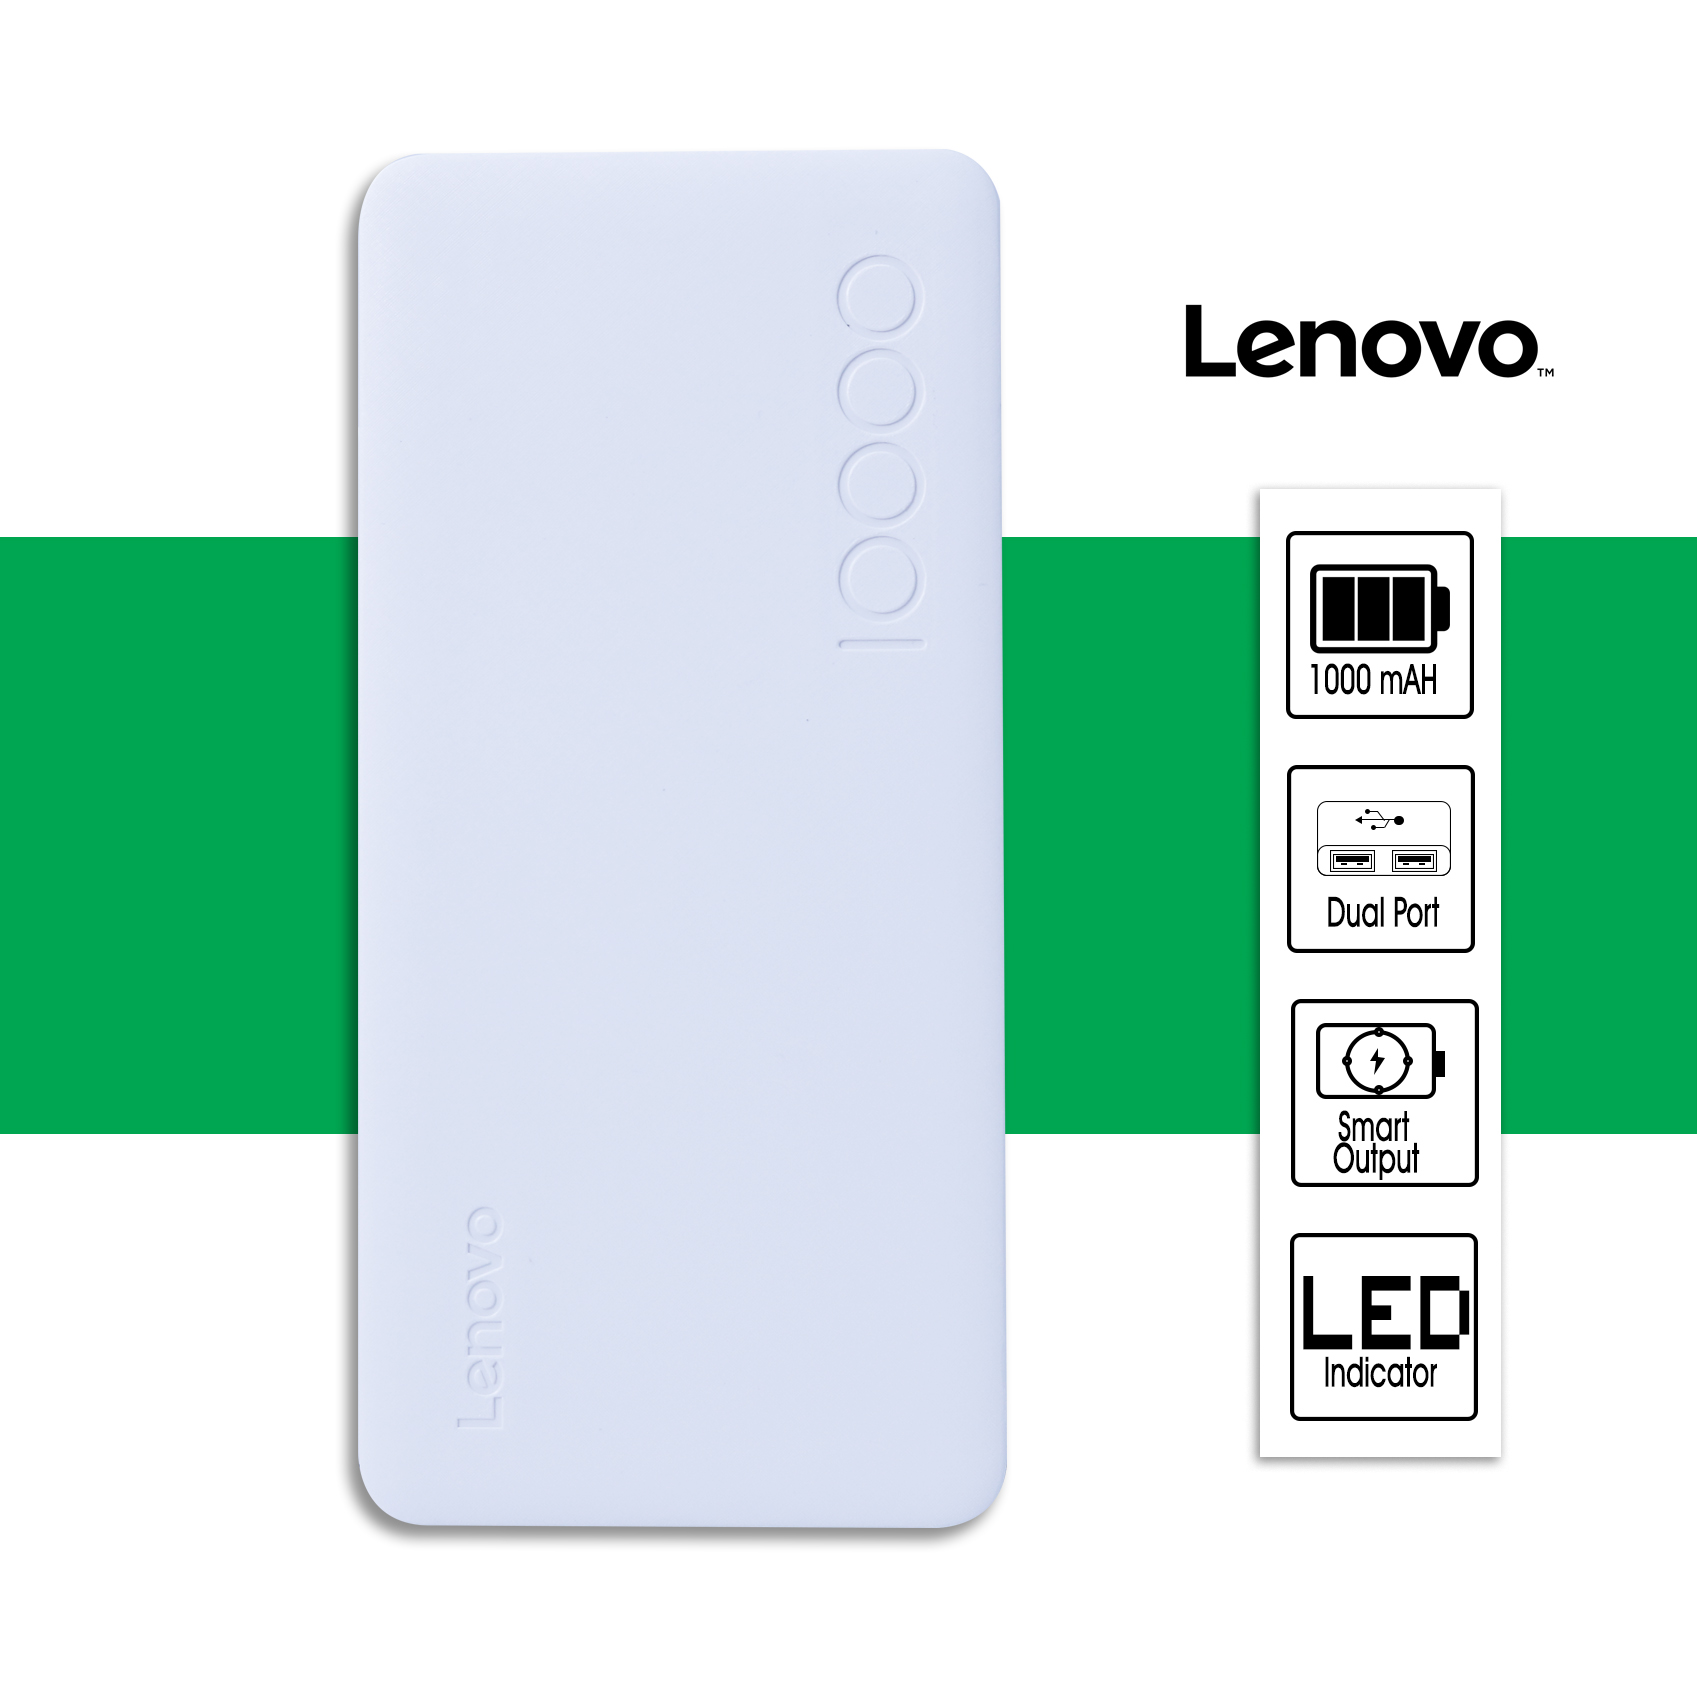 Lenovo  HB10 10000 mAh Dual USB Port Powerbank - White